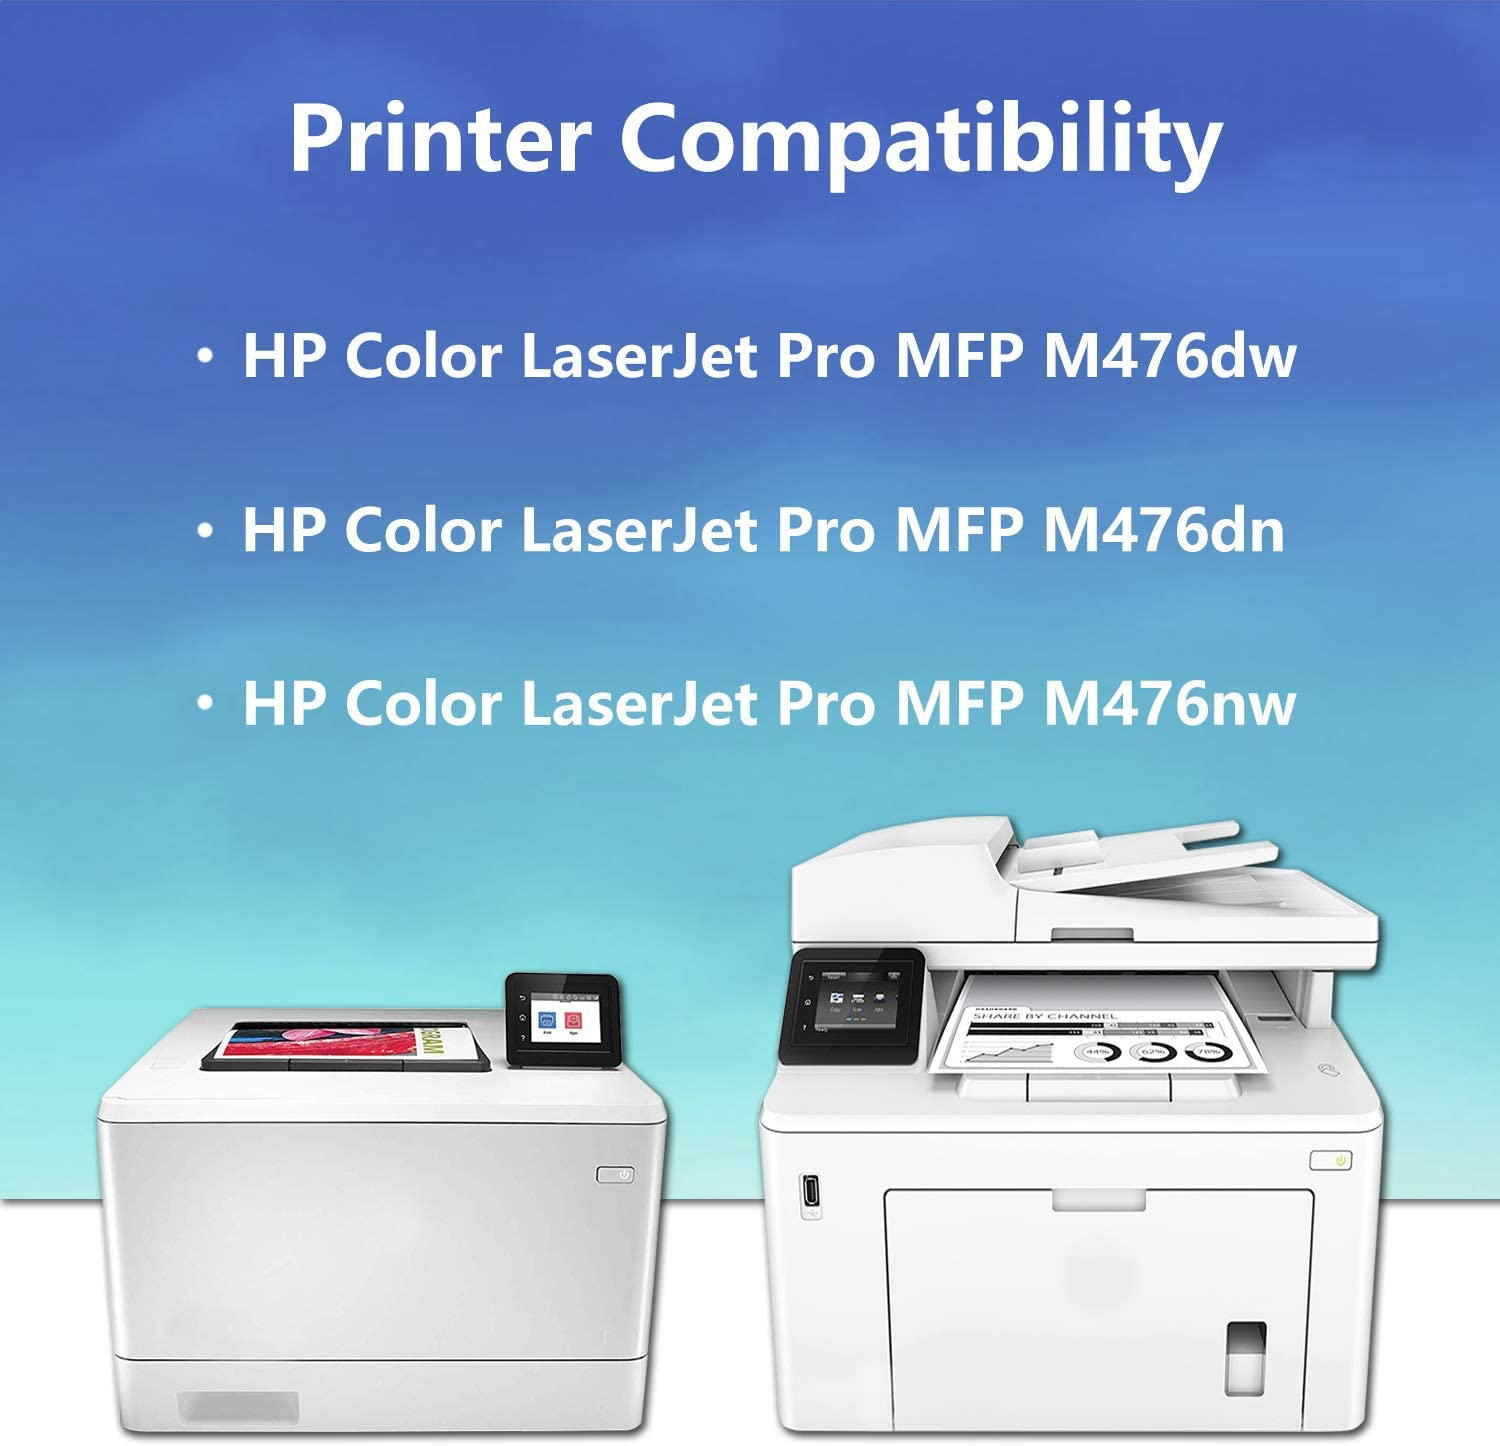 CF386A M476dn M476nw 3BK+1C+1M+1Y CF380X CF381X CF382X CF383X Remanufactured Toner Cartridge Replacement for HP Color Laserjet Pro M476dw CF385A 312X 6 Pack Printer,Sold by AlToner CF387A